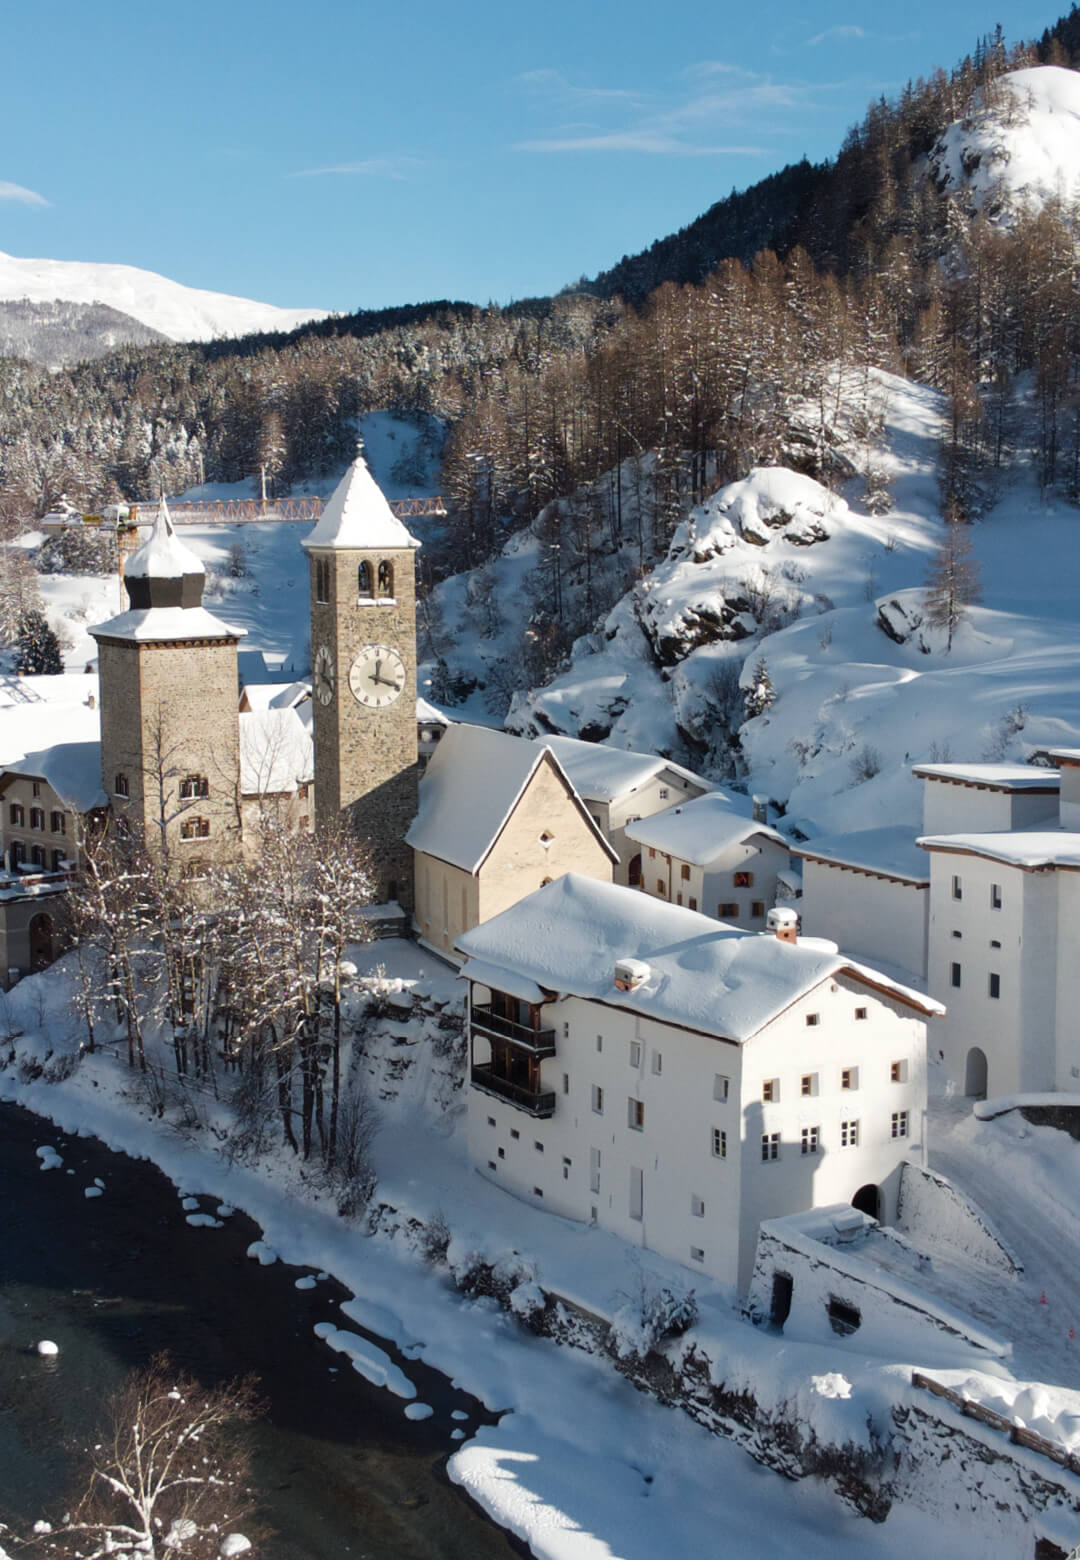 The museum housed in a 12th century former monastery and brewery in Susch, a remote town in the Engadin valley of the Swiss Alps | Museum Susch | Chasper Schmidlin and Lukas Voellmy | STIRworld